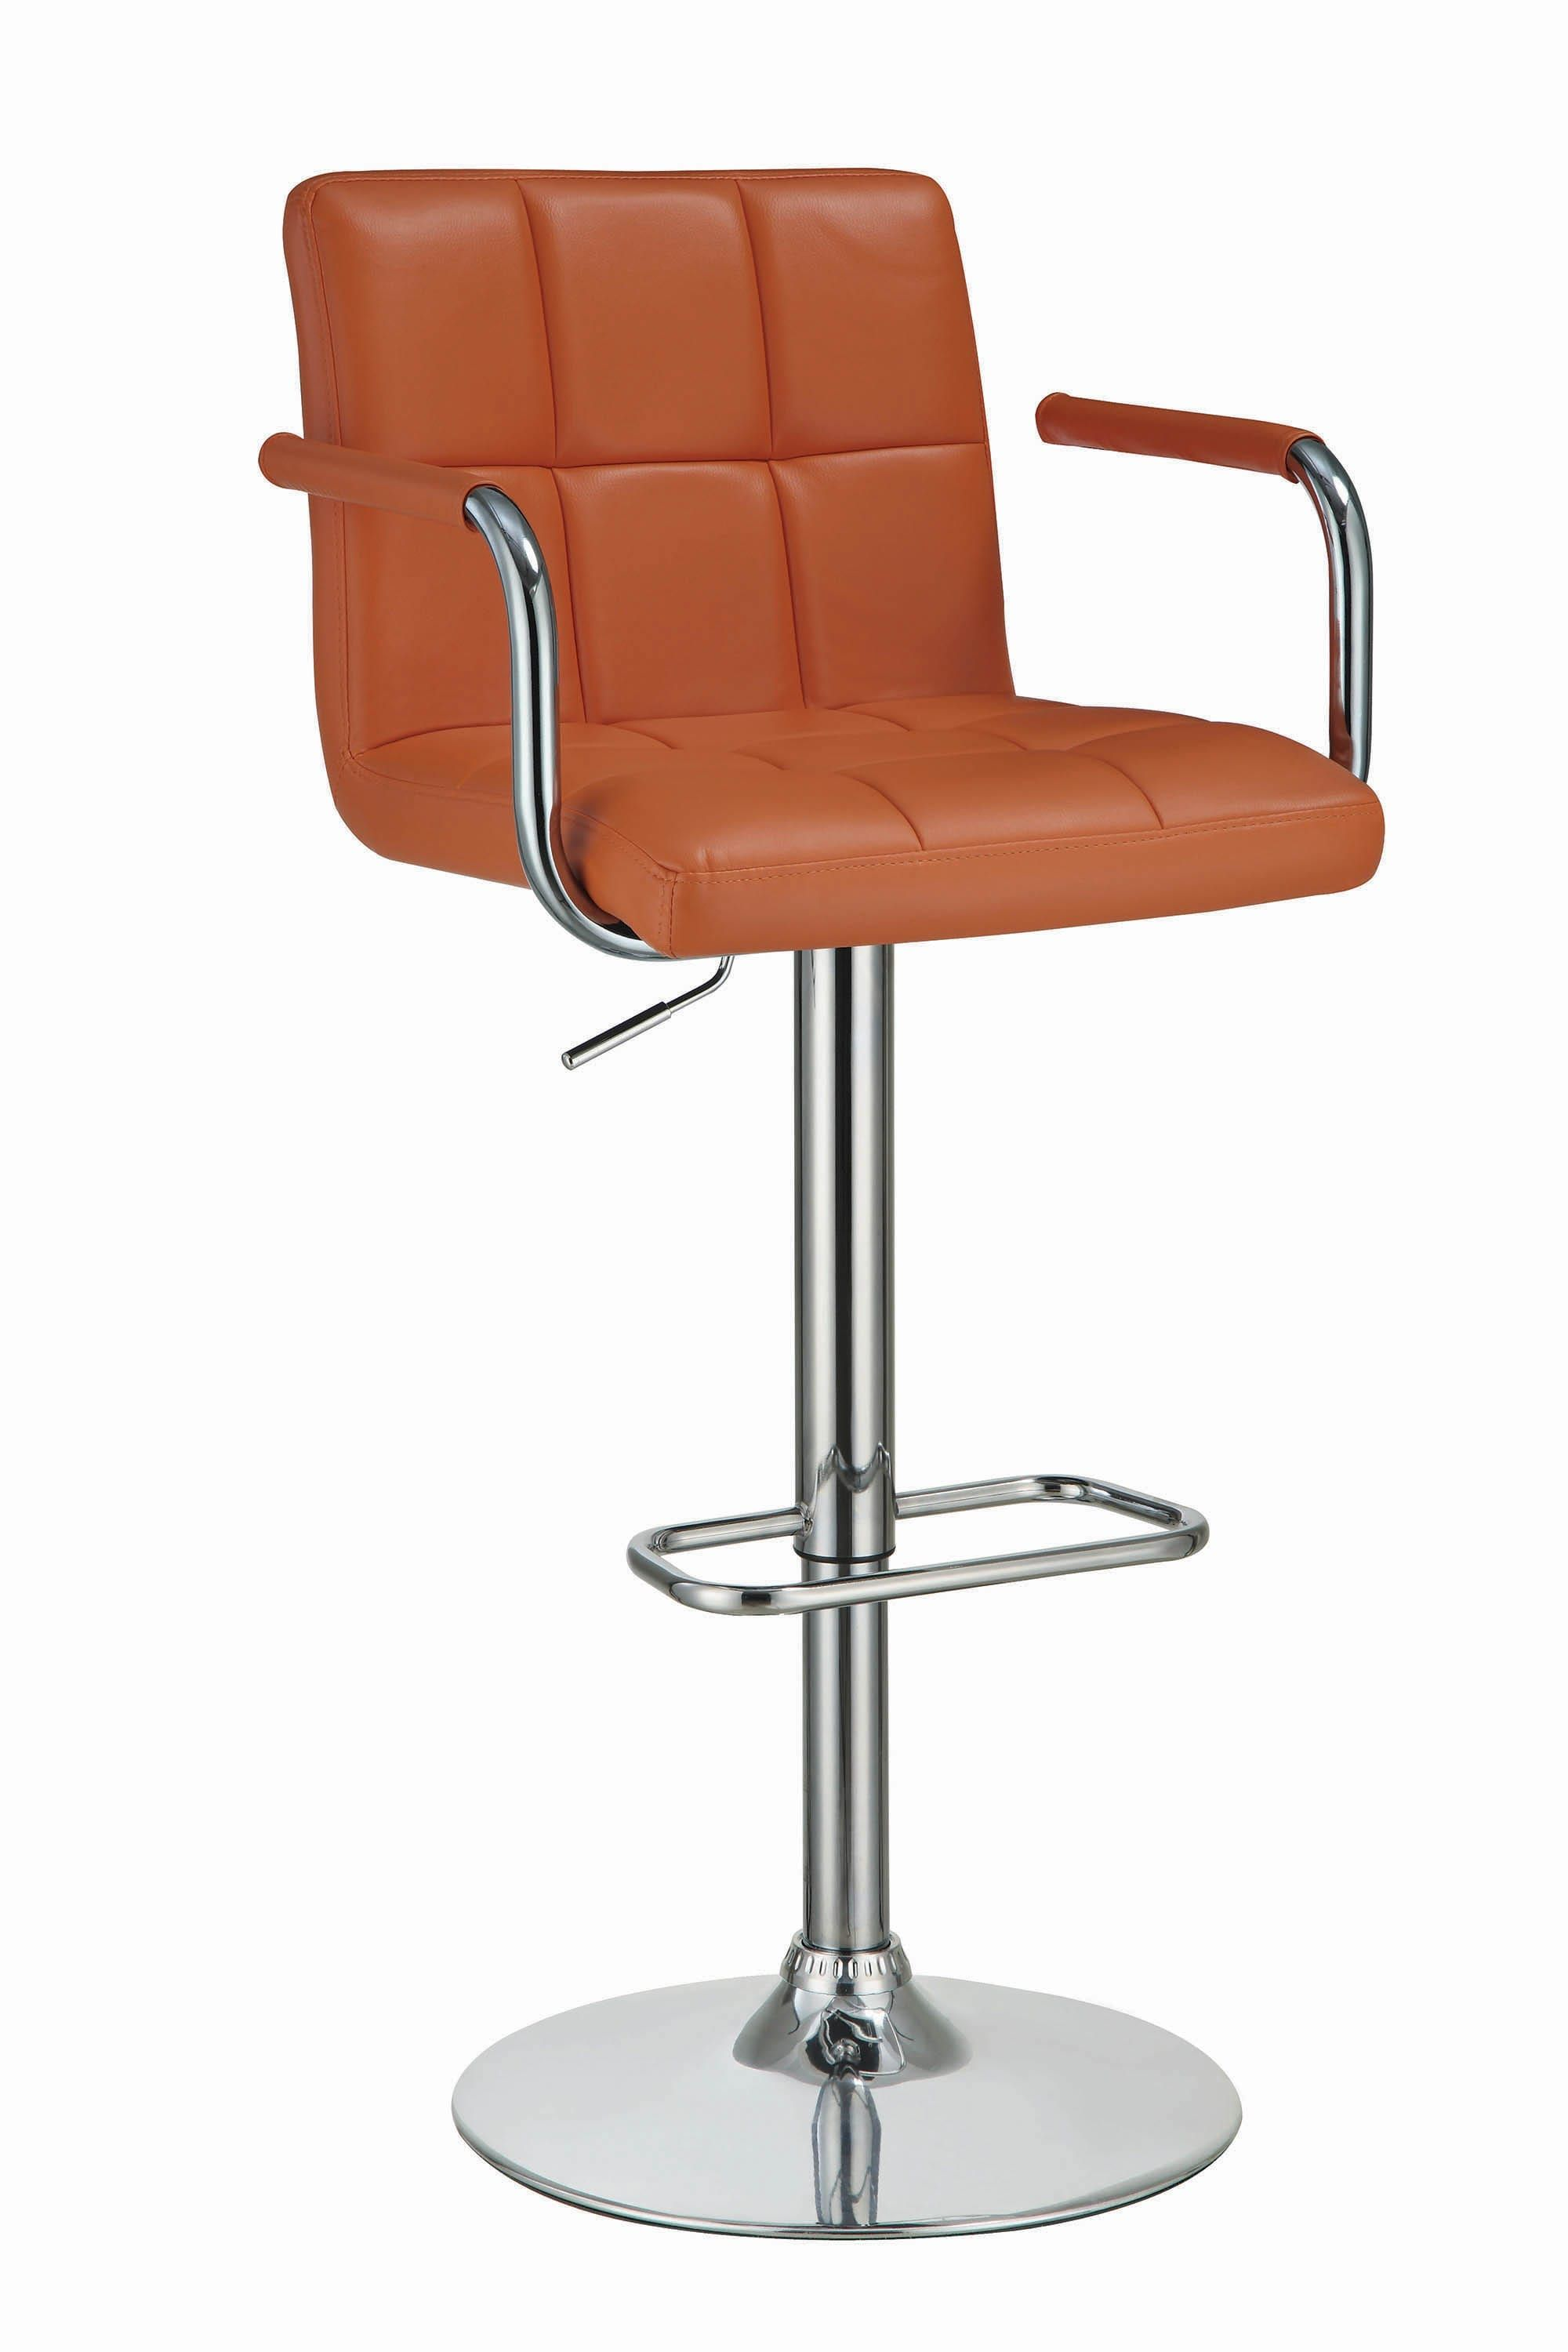 Contemporary Pumpkin and Chrome Adjustable Bar Stool with